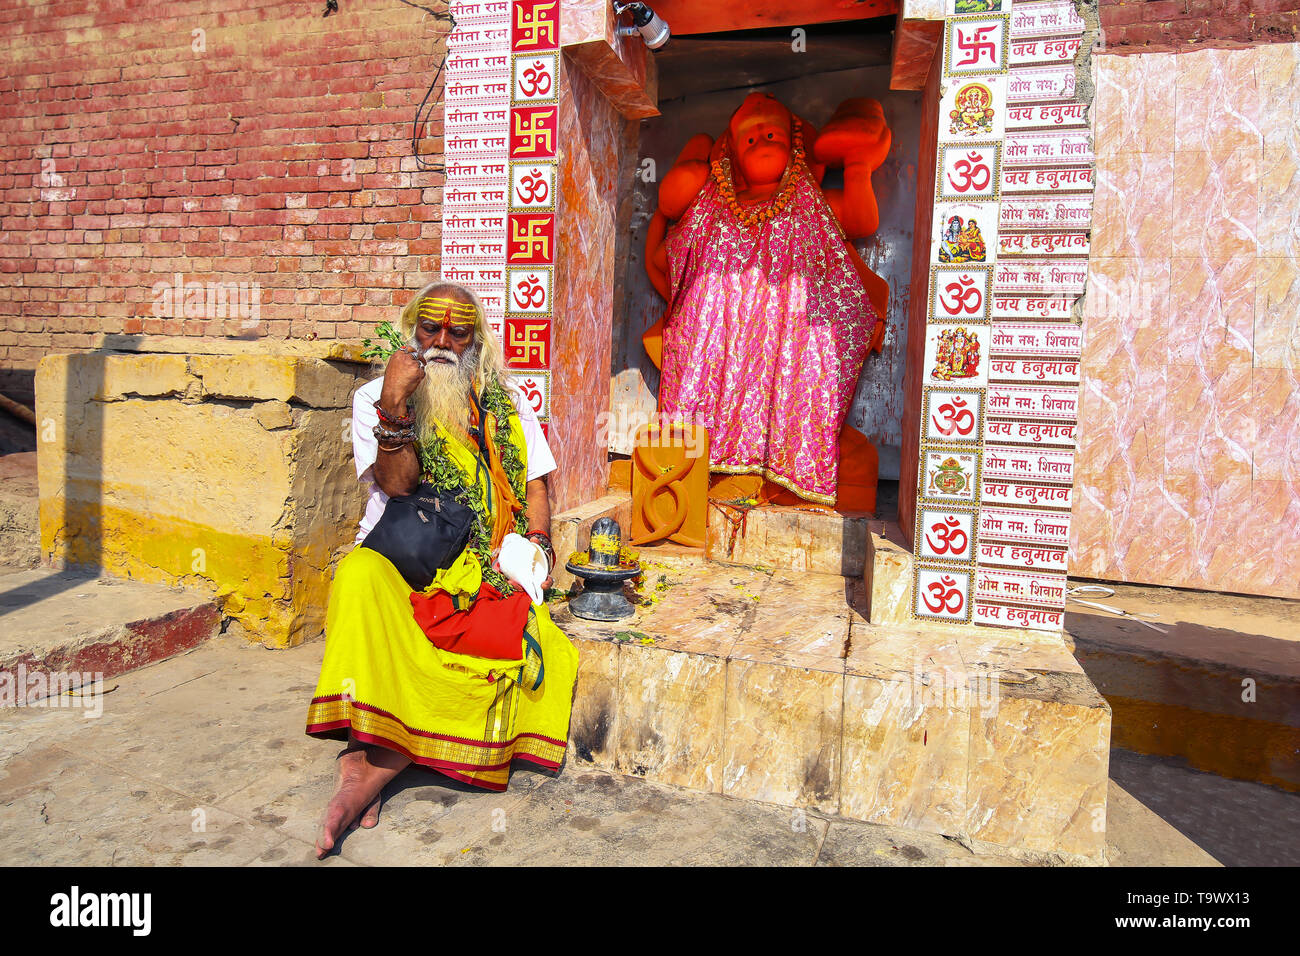 Indian Sadhu baba sitting in front of a Hanuman temple at Varanasi Ganges river ghat - Stock Image